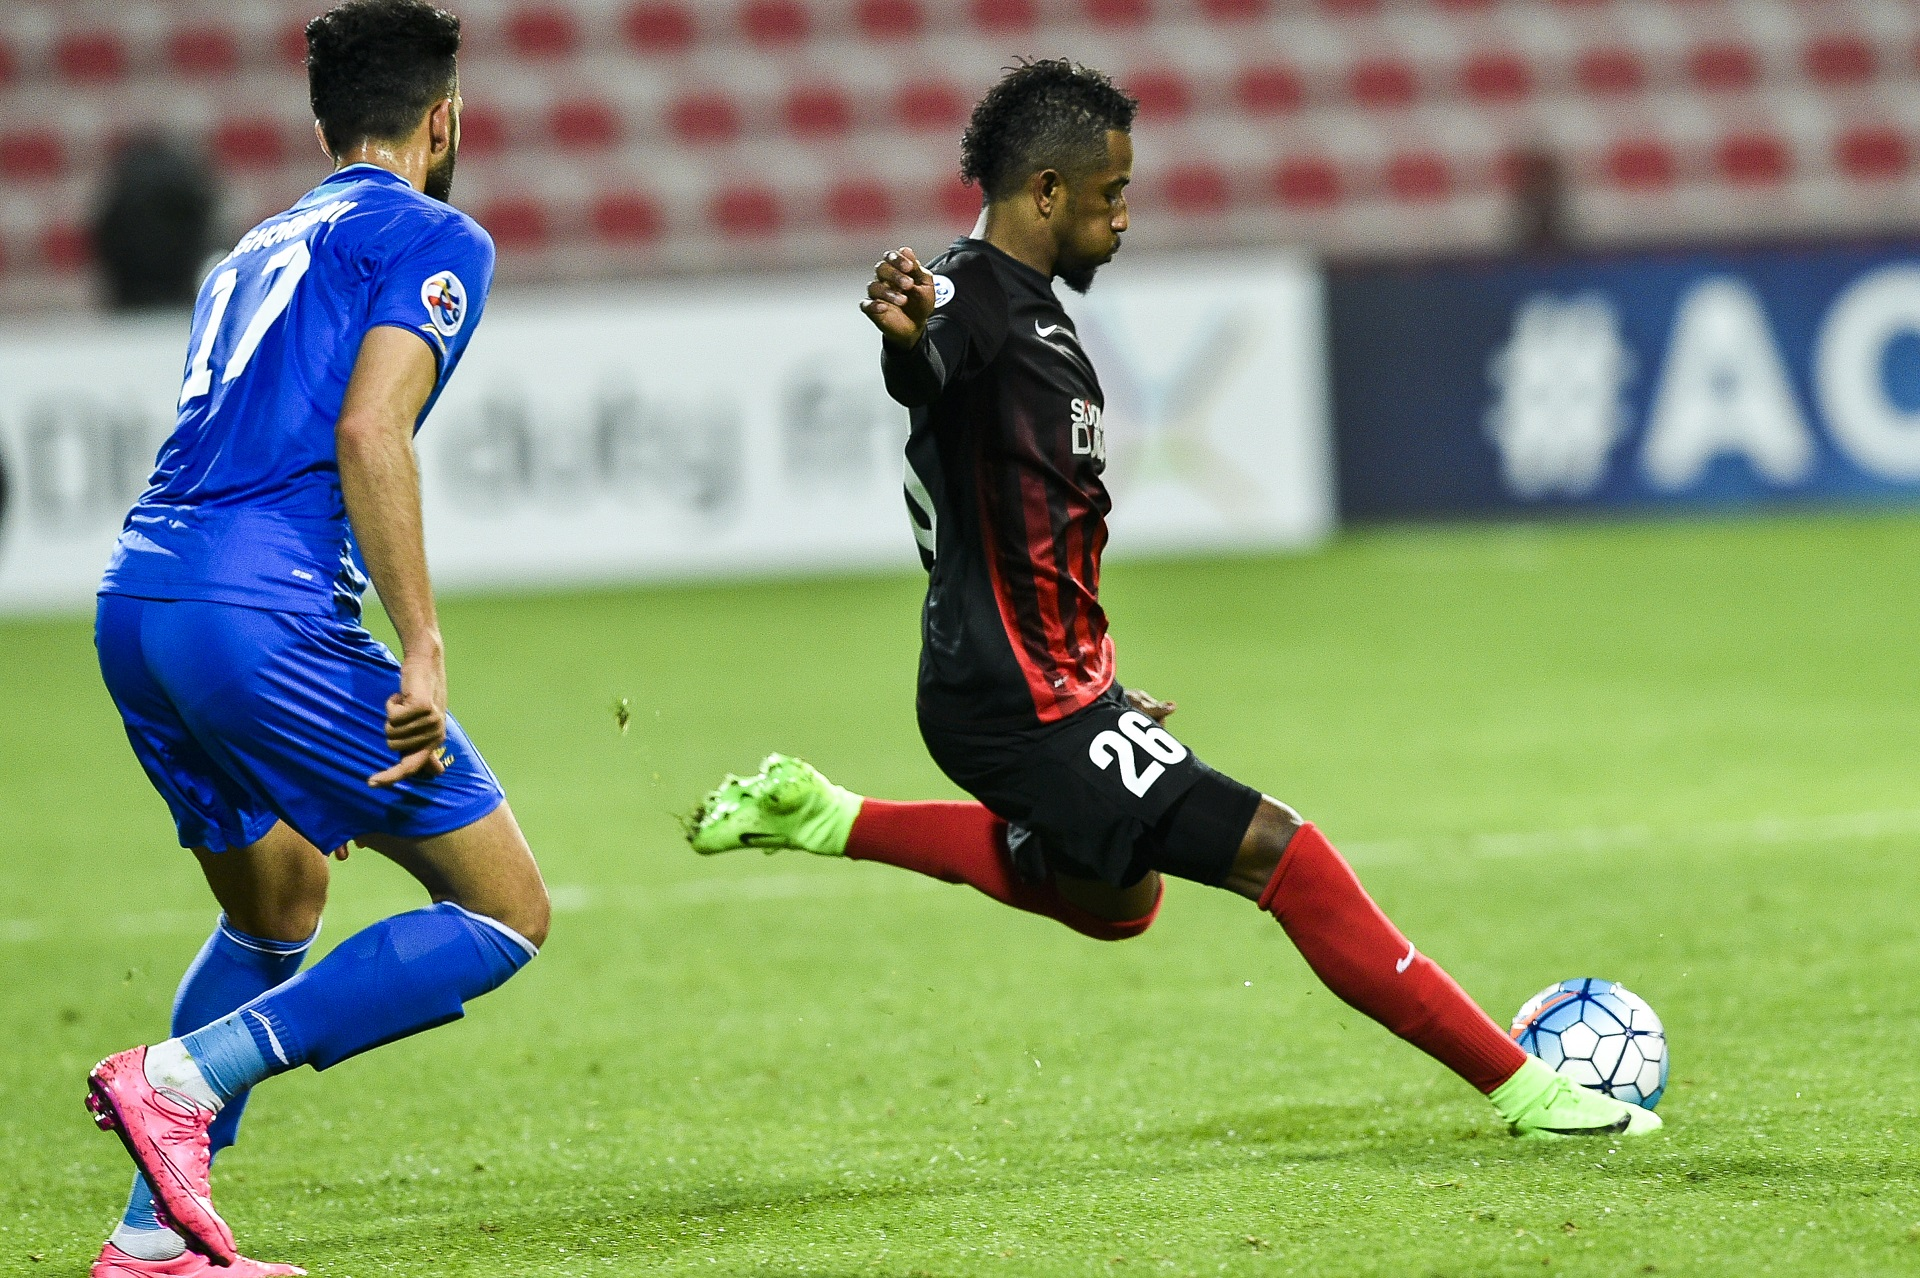 Abdulaziz Haikal (R) of UAE's Al-Ahli FC kicks the ball past Ali Ghorbani of Iran's Esteghlal FC